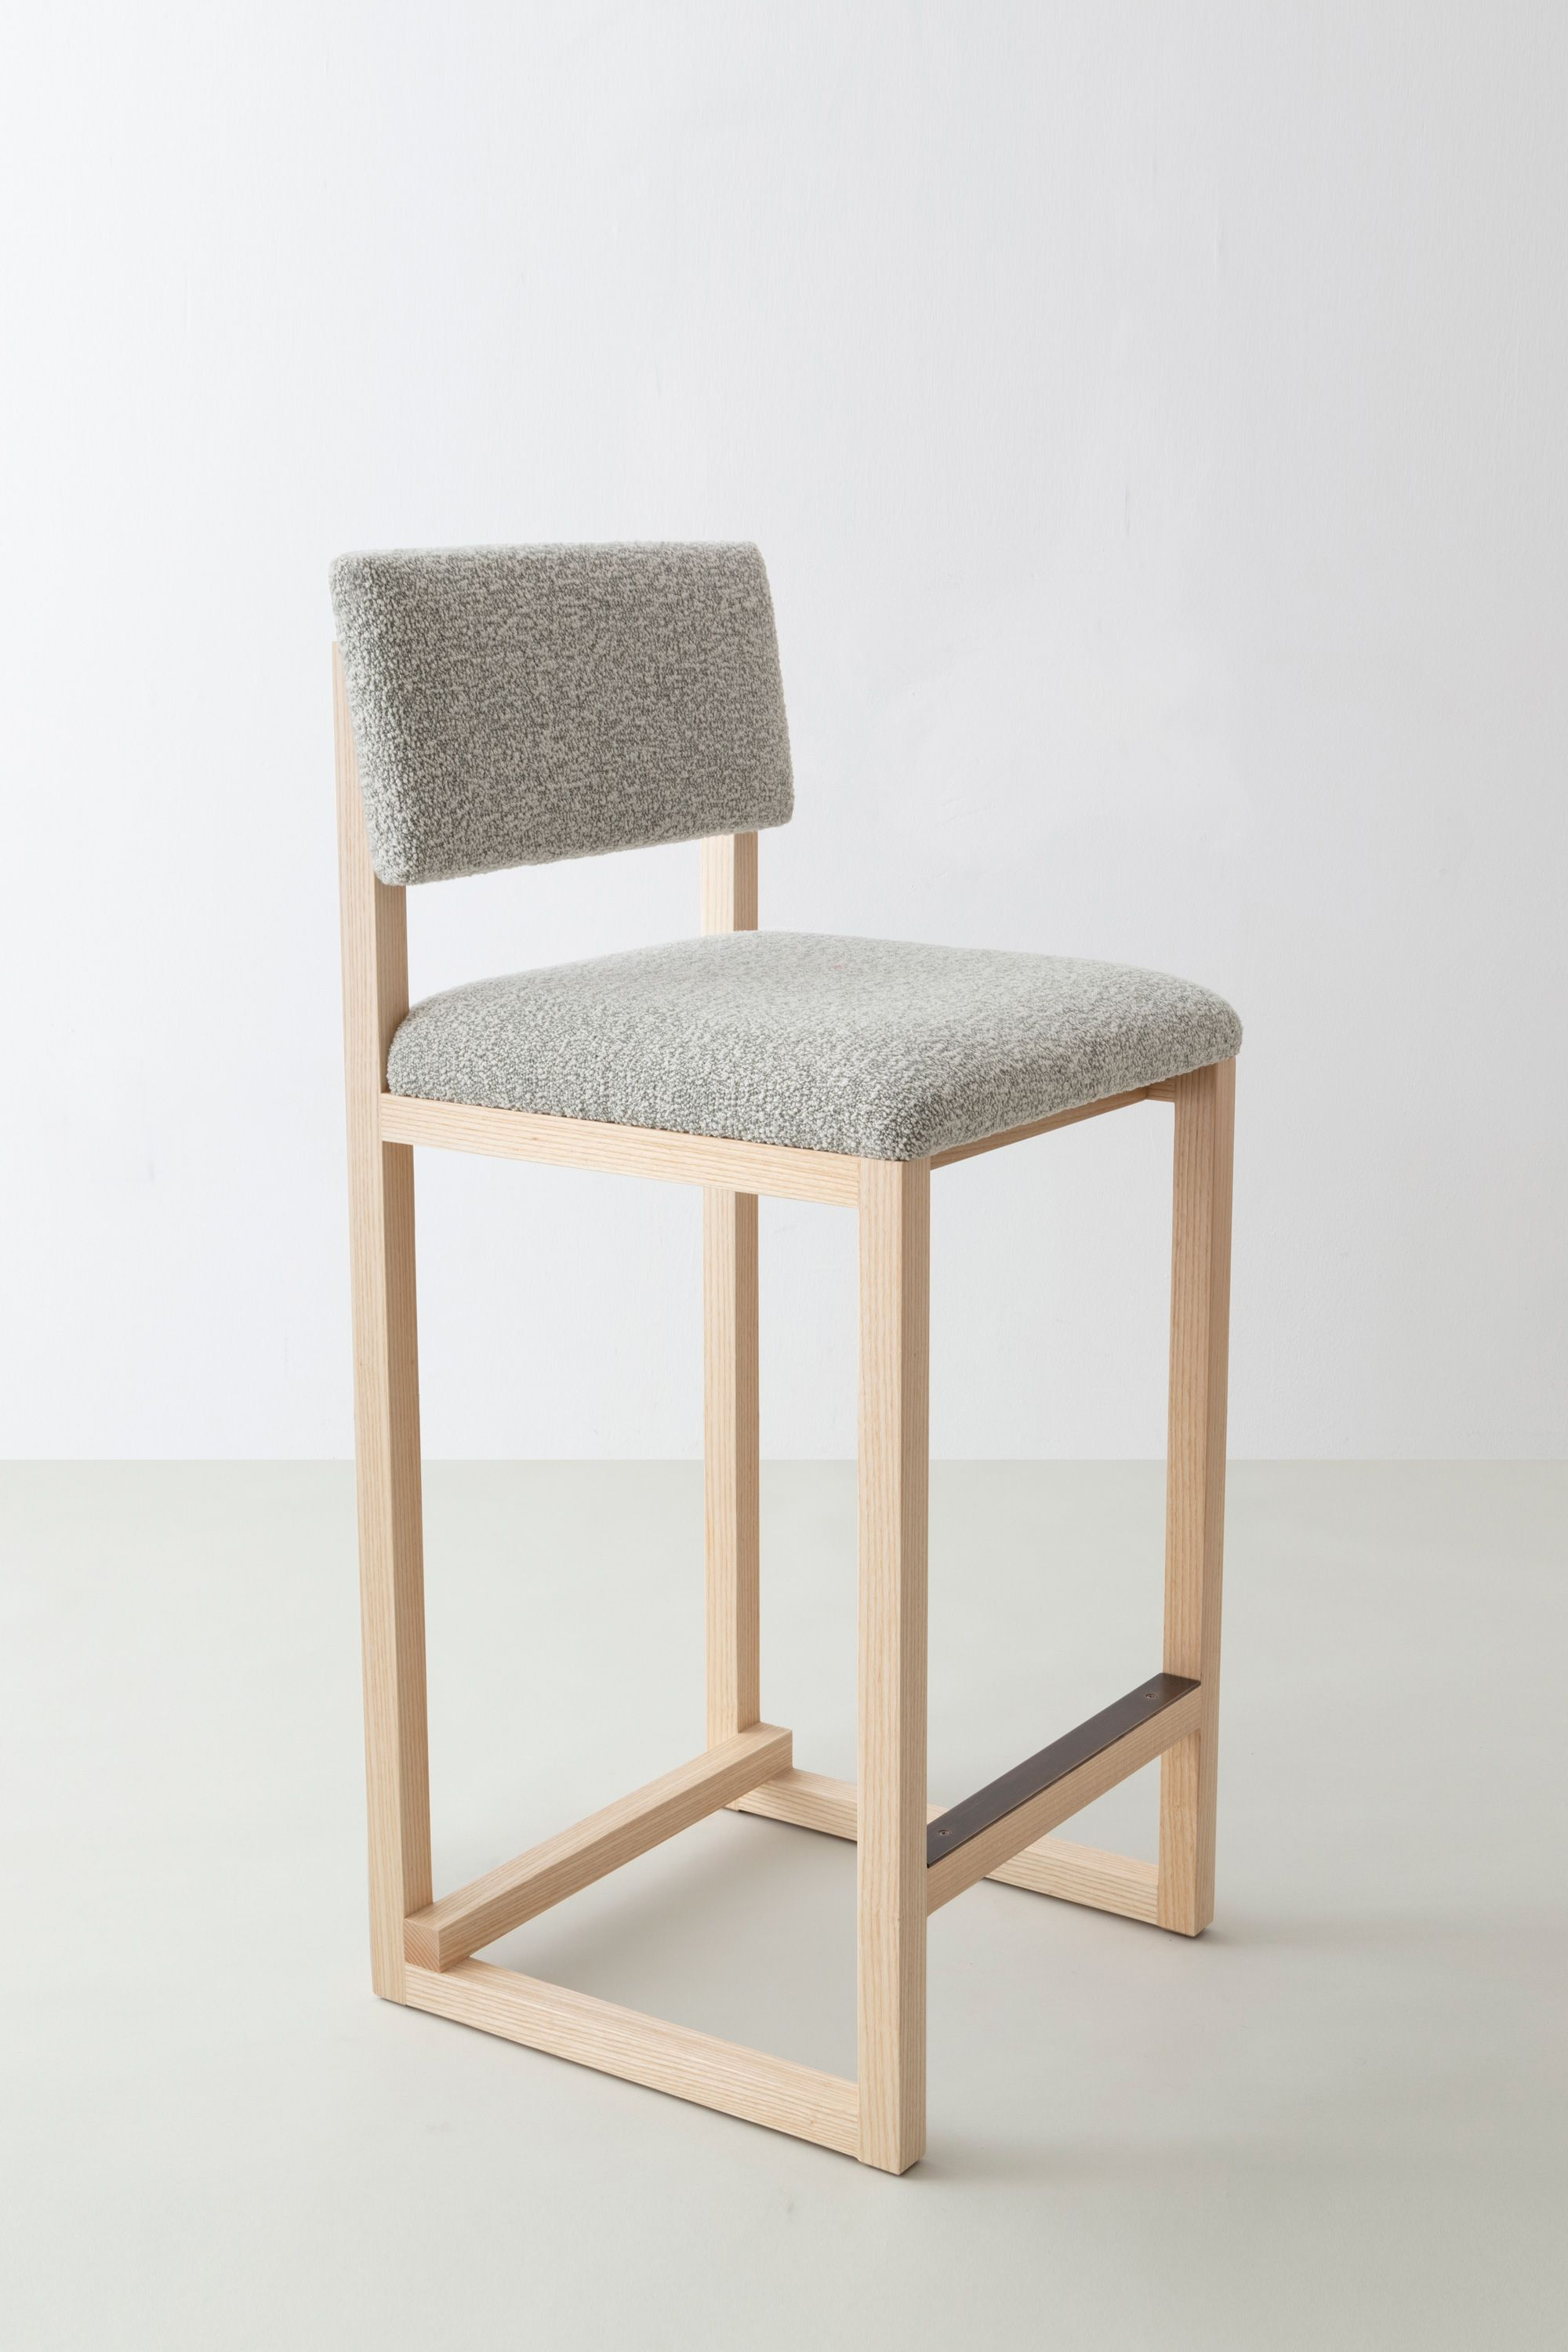 Shown In Solid Ash Speckled Boucle Wool With Hand Finished Antique Brass Kick Plate And Hardware Made To Order I In 2020 Wood Furniture Diy Counter Stools Furniture